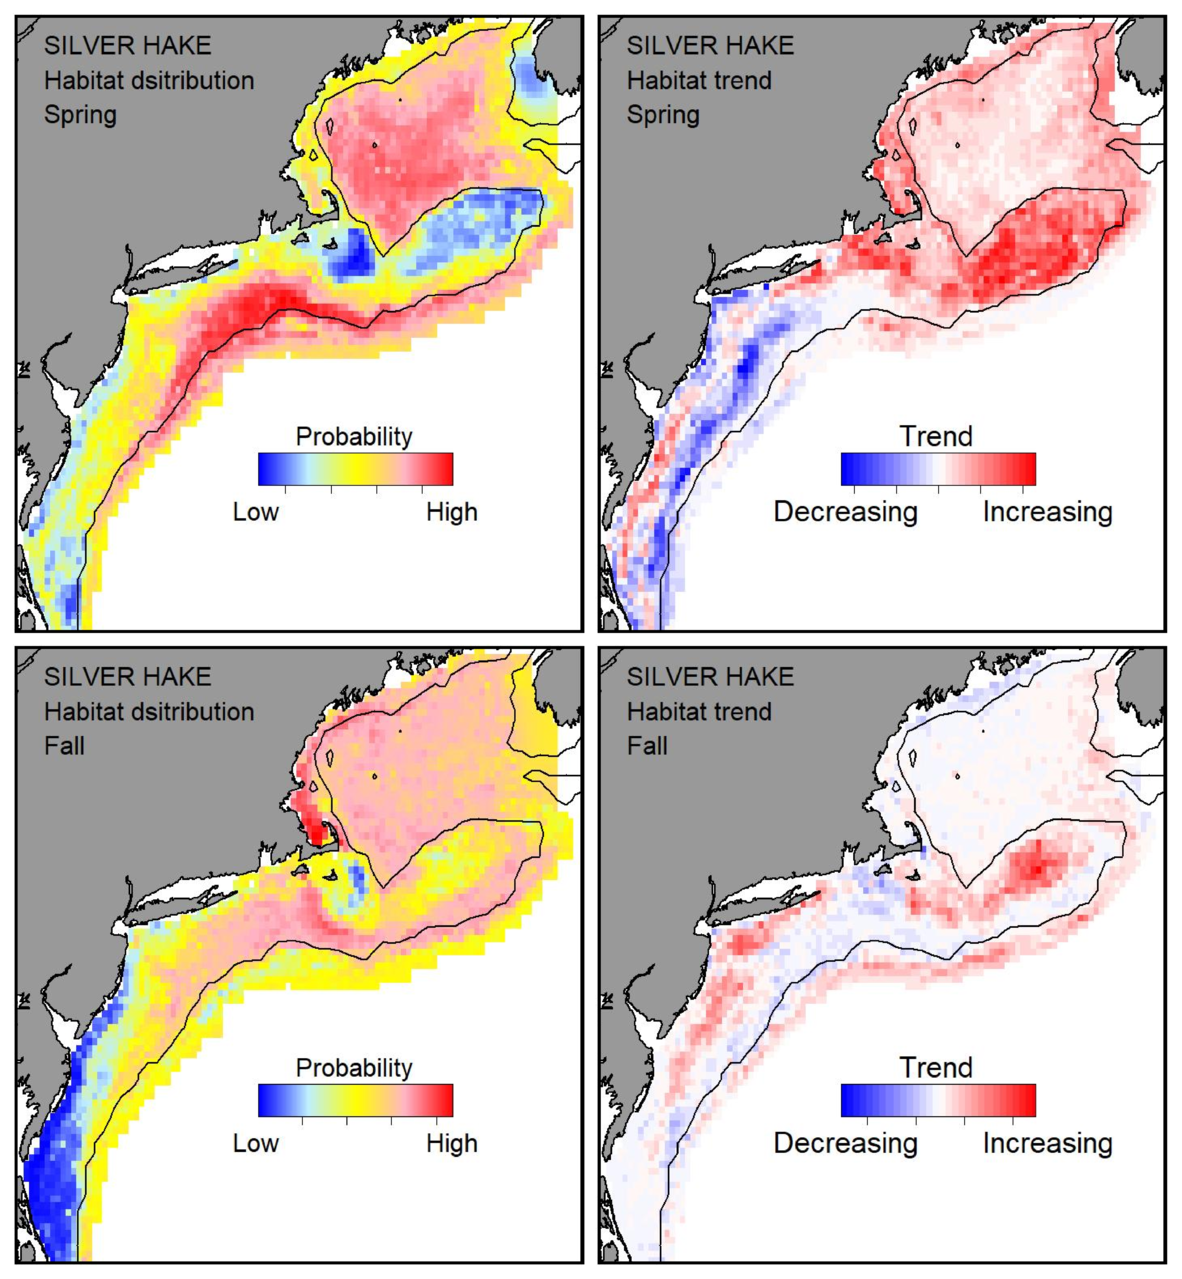 Top row: Probable habitat distribution for silver hake showing the highest concentration and increasing trend in the Gulf of Maine during the spring. Bottom row: Probable habitat distribution for silver hake showing the highest concentration and increasing trend in the Gulf of Maine during the fall.